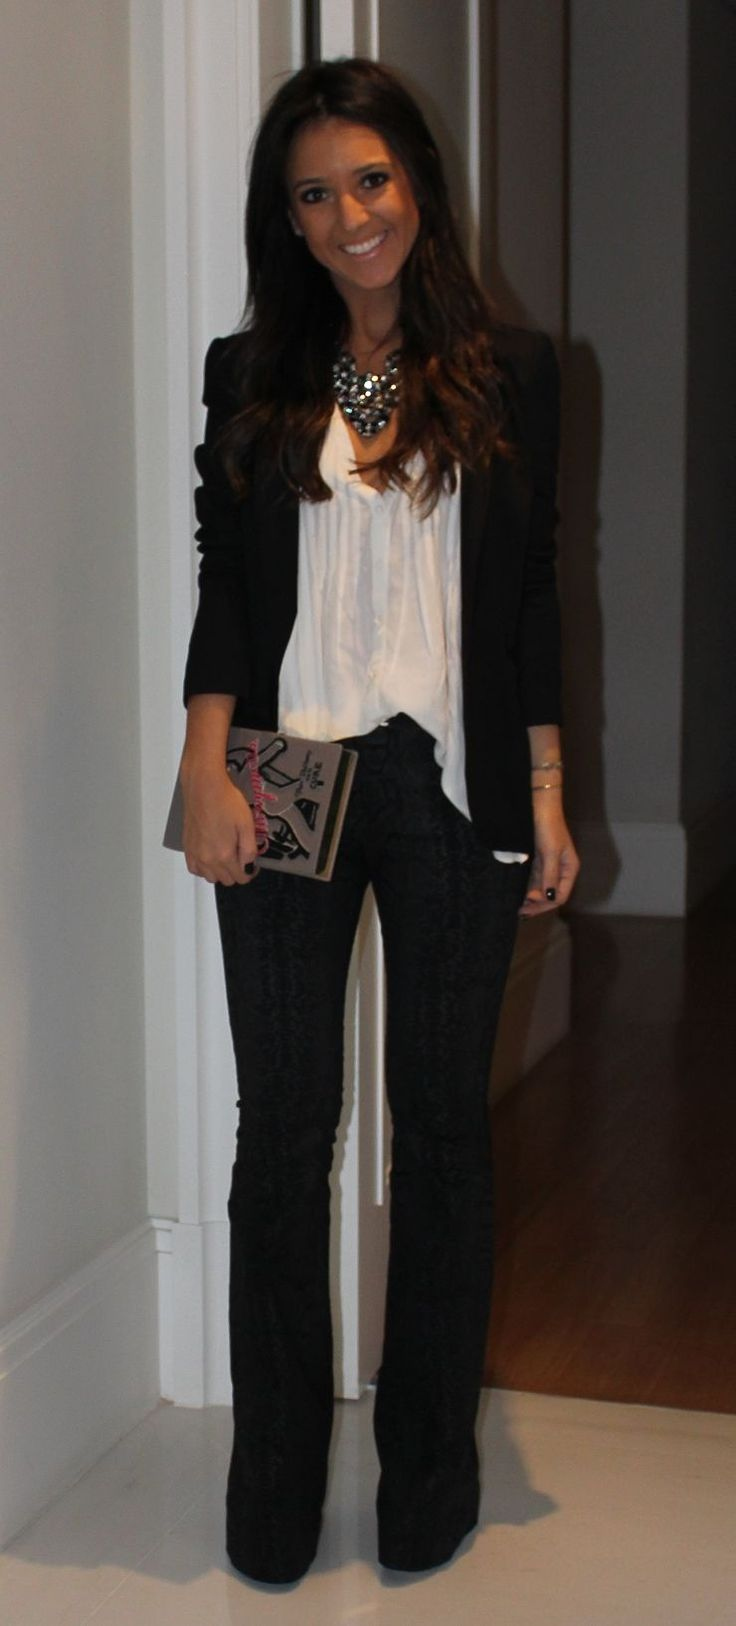 Cute black & white work outfit with statement necklace